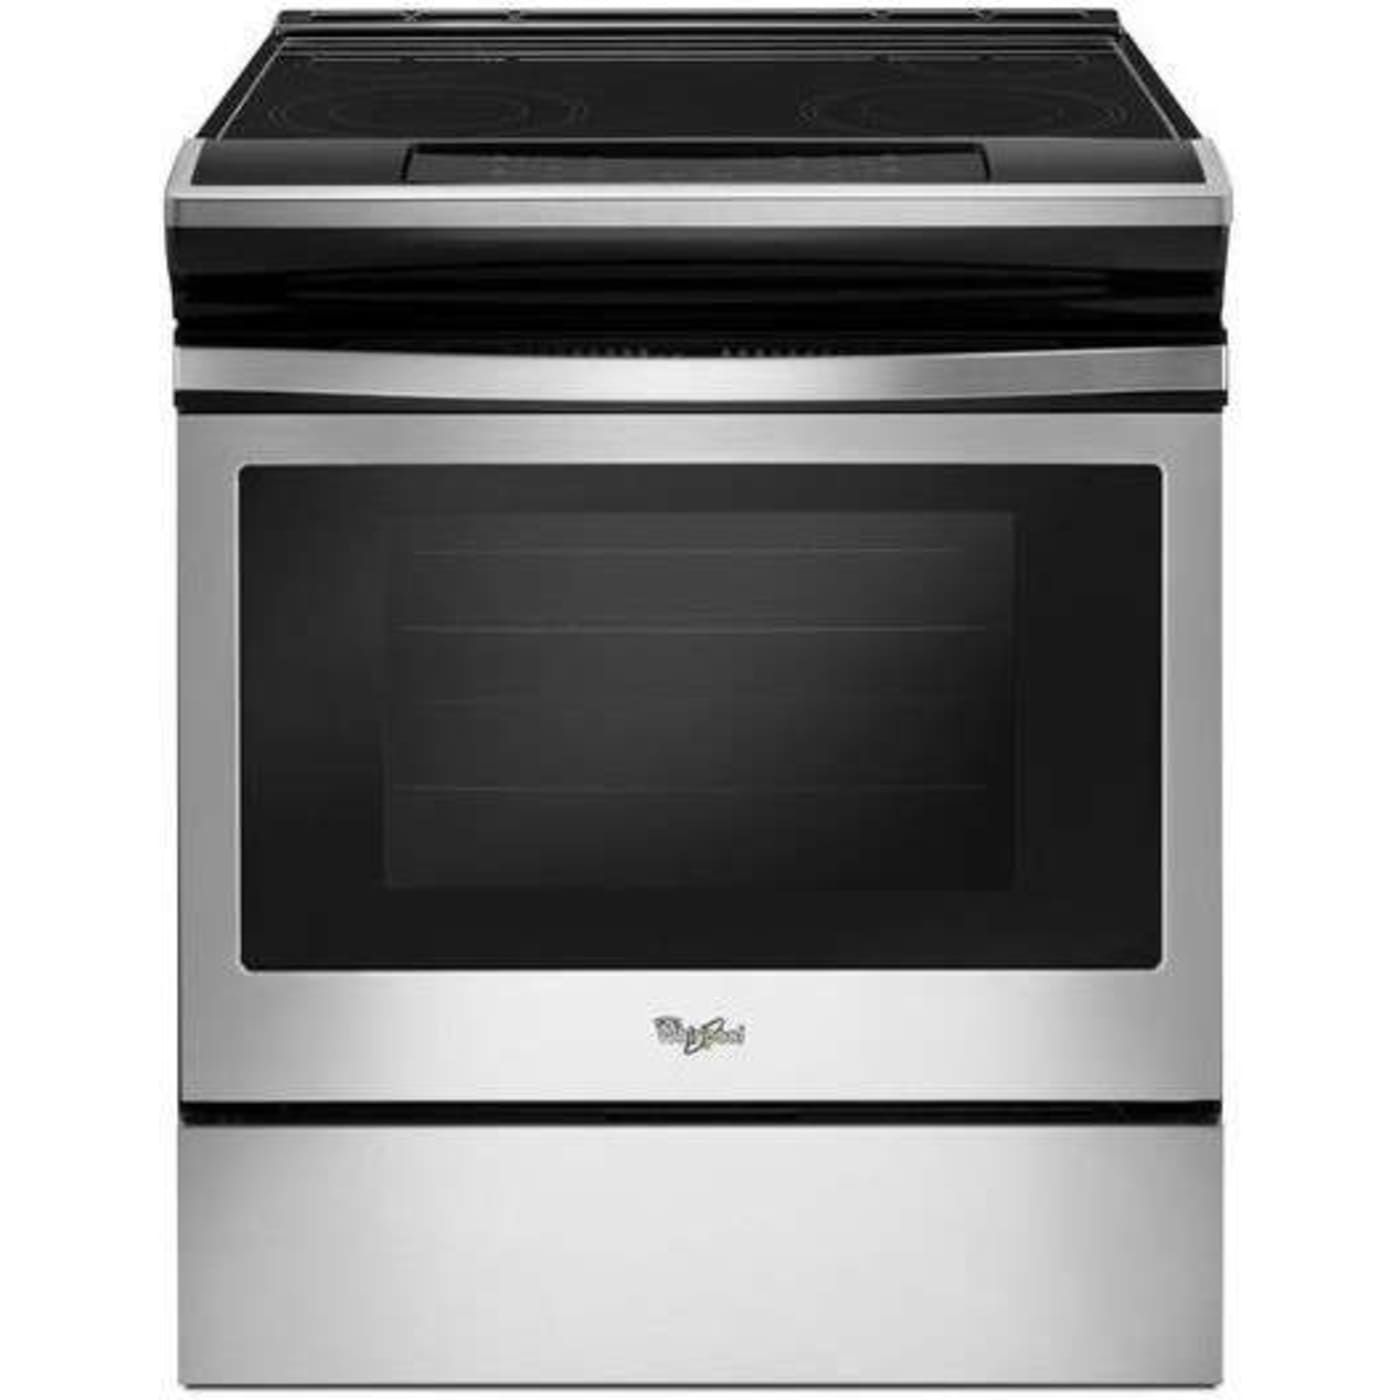 Wee510s0fs by whirlpool electric ranges